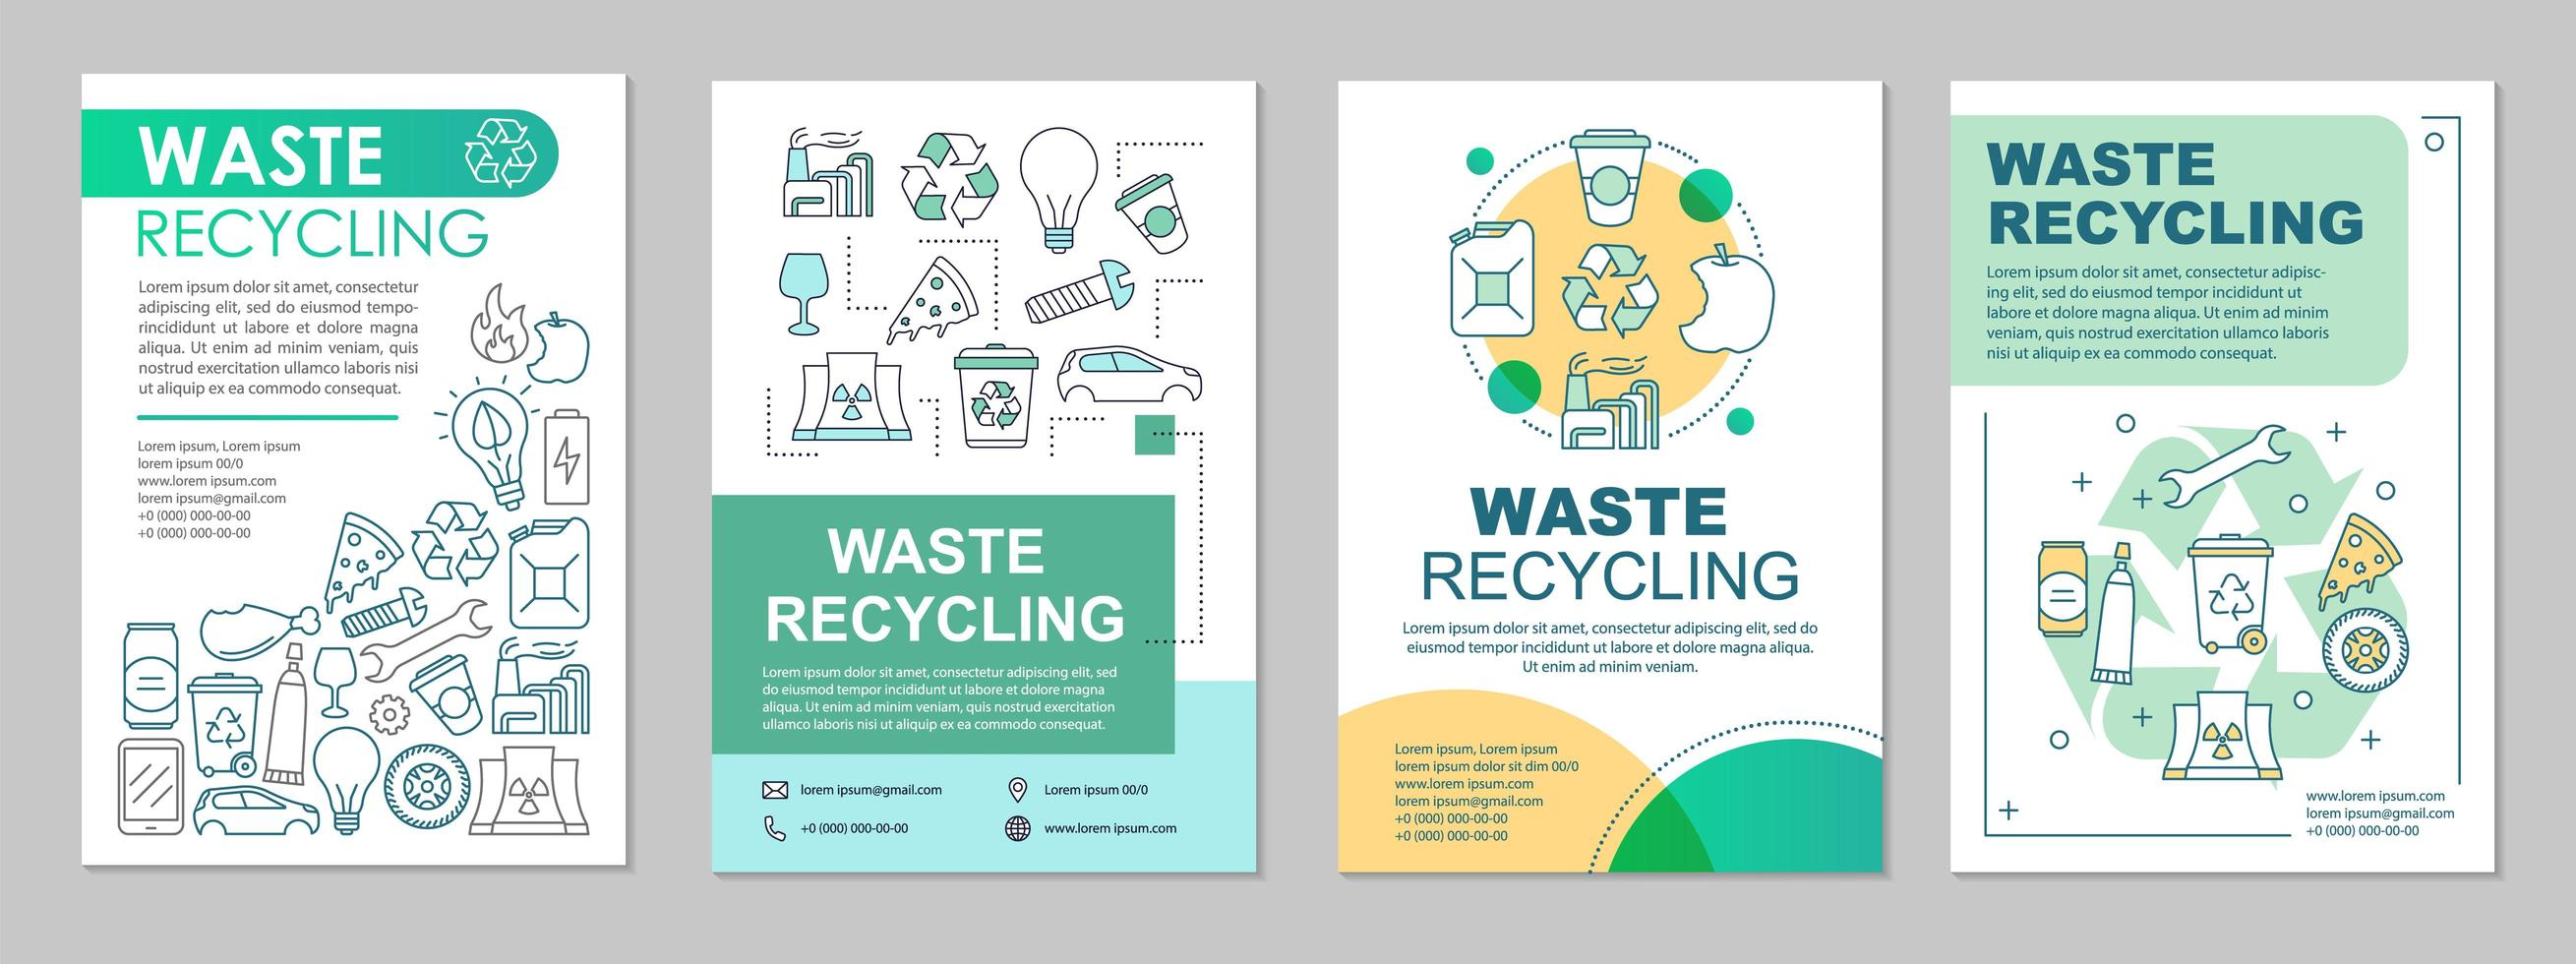 Waste recycling brochure template layout vector